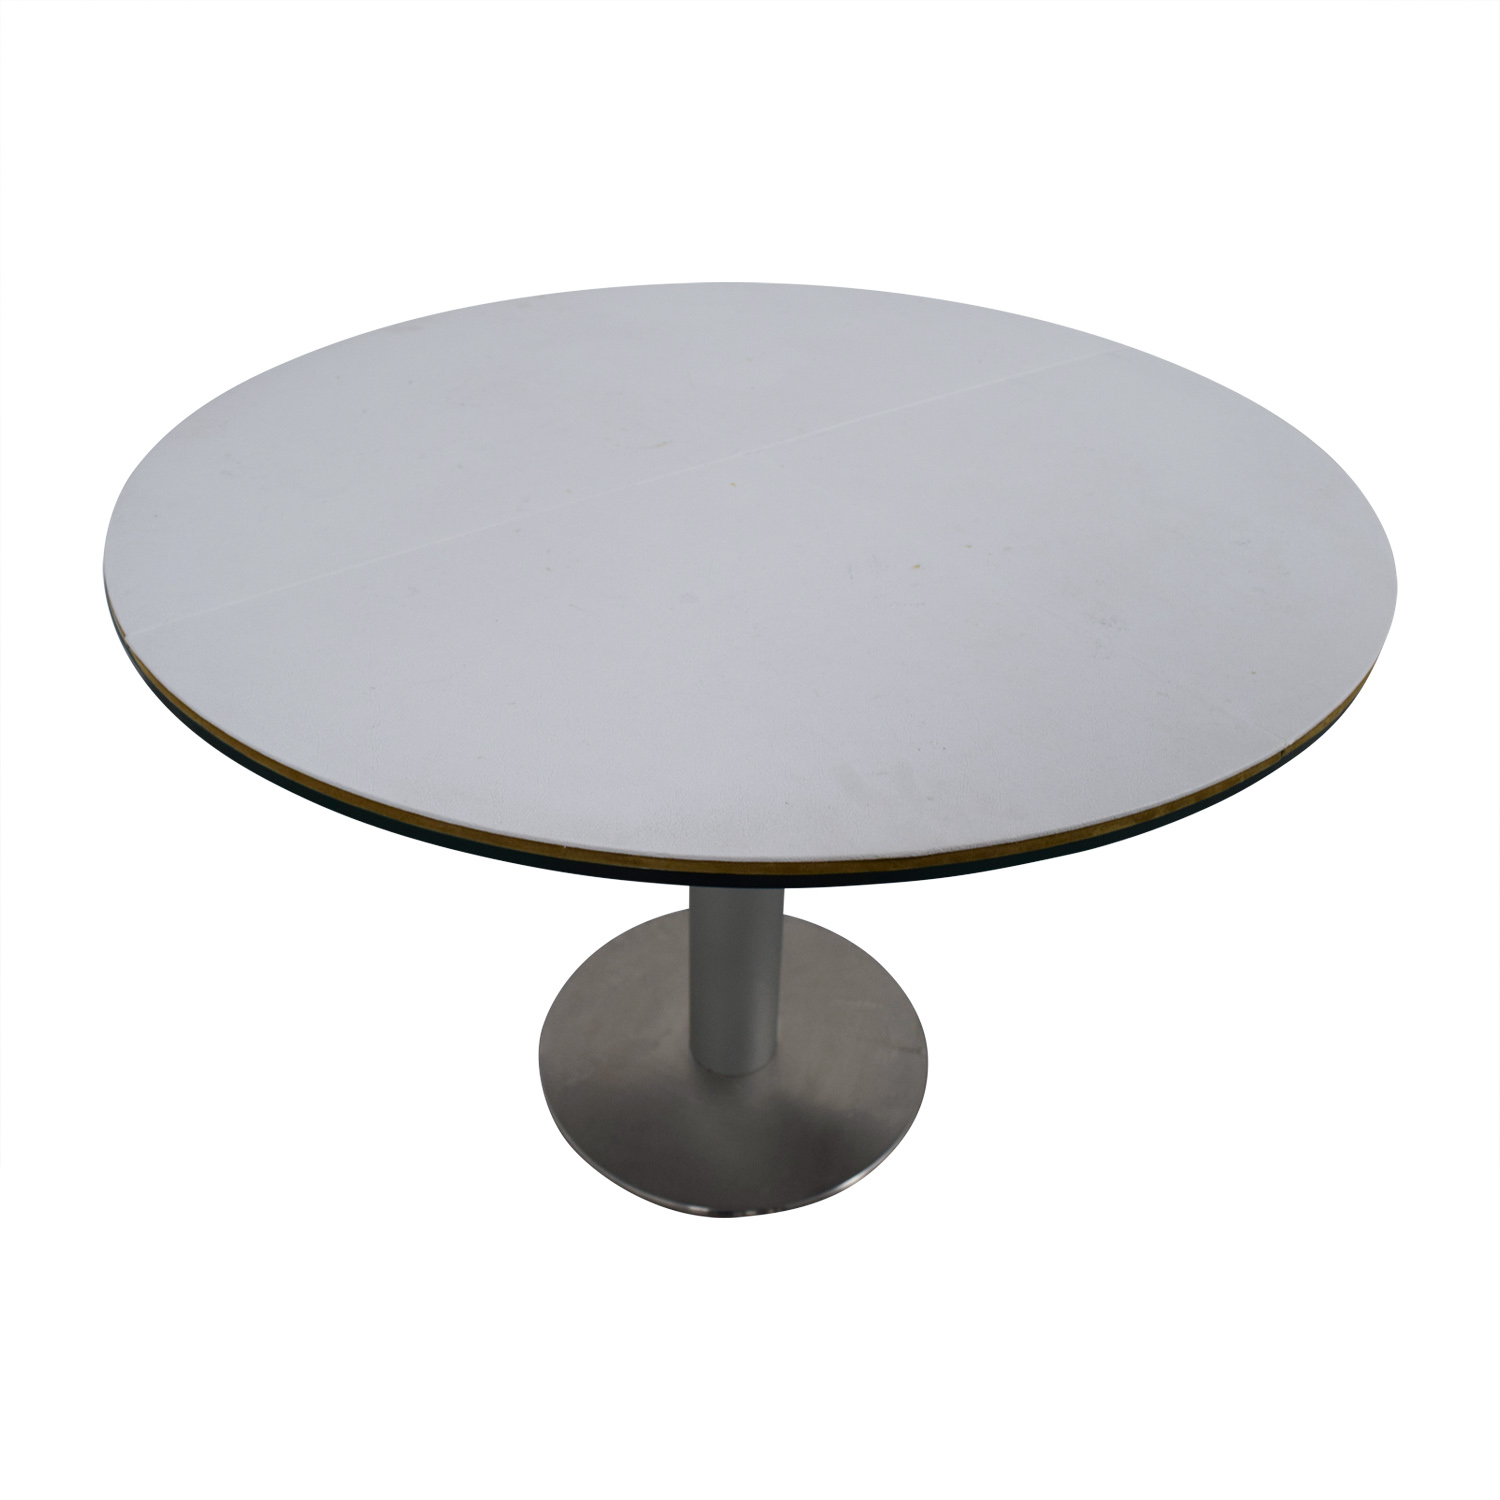 Stua Design Furniture Stua Design Furniture Zero Glass and Chrome Table second hand